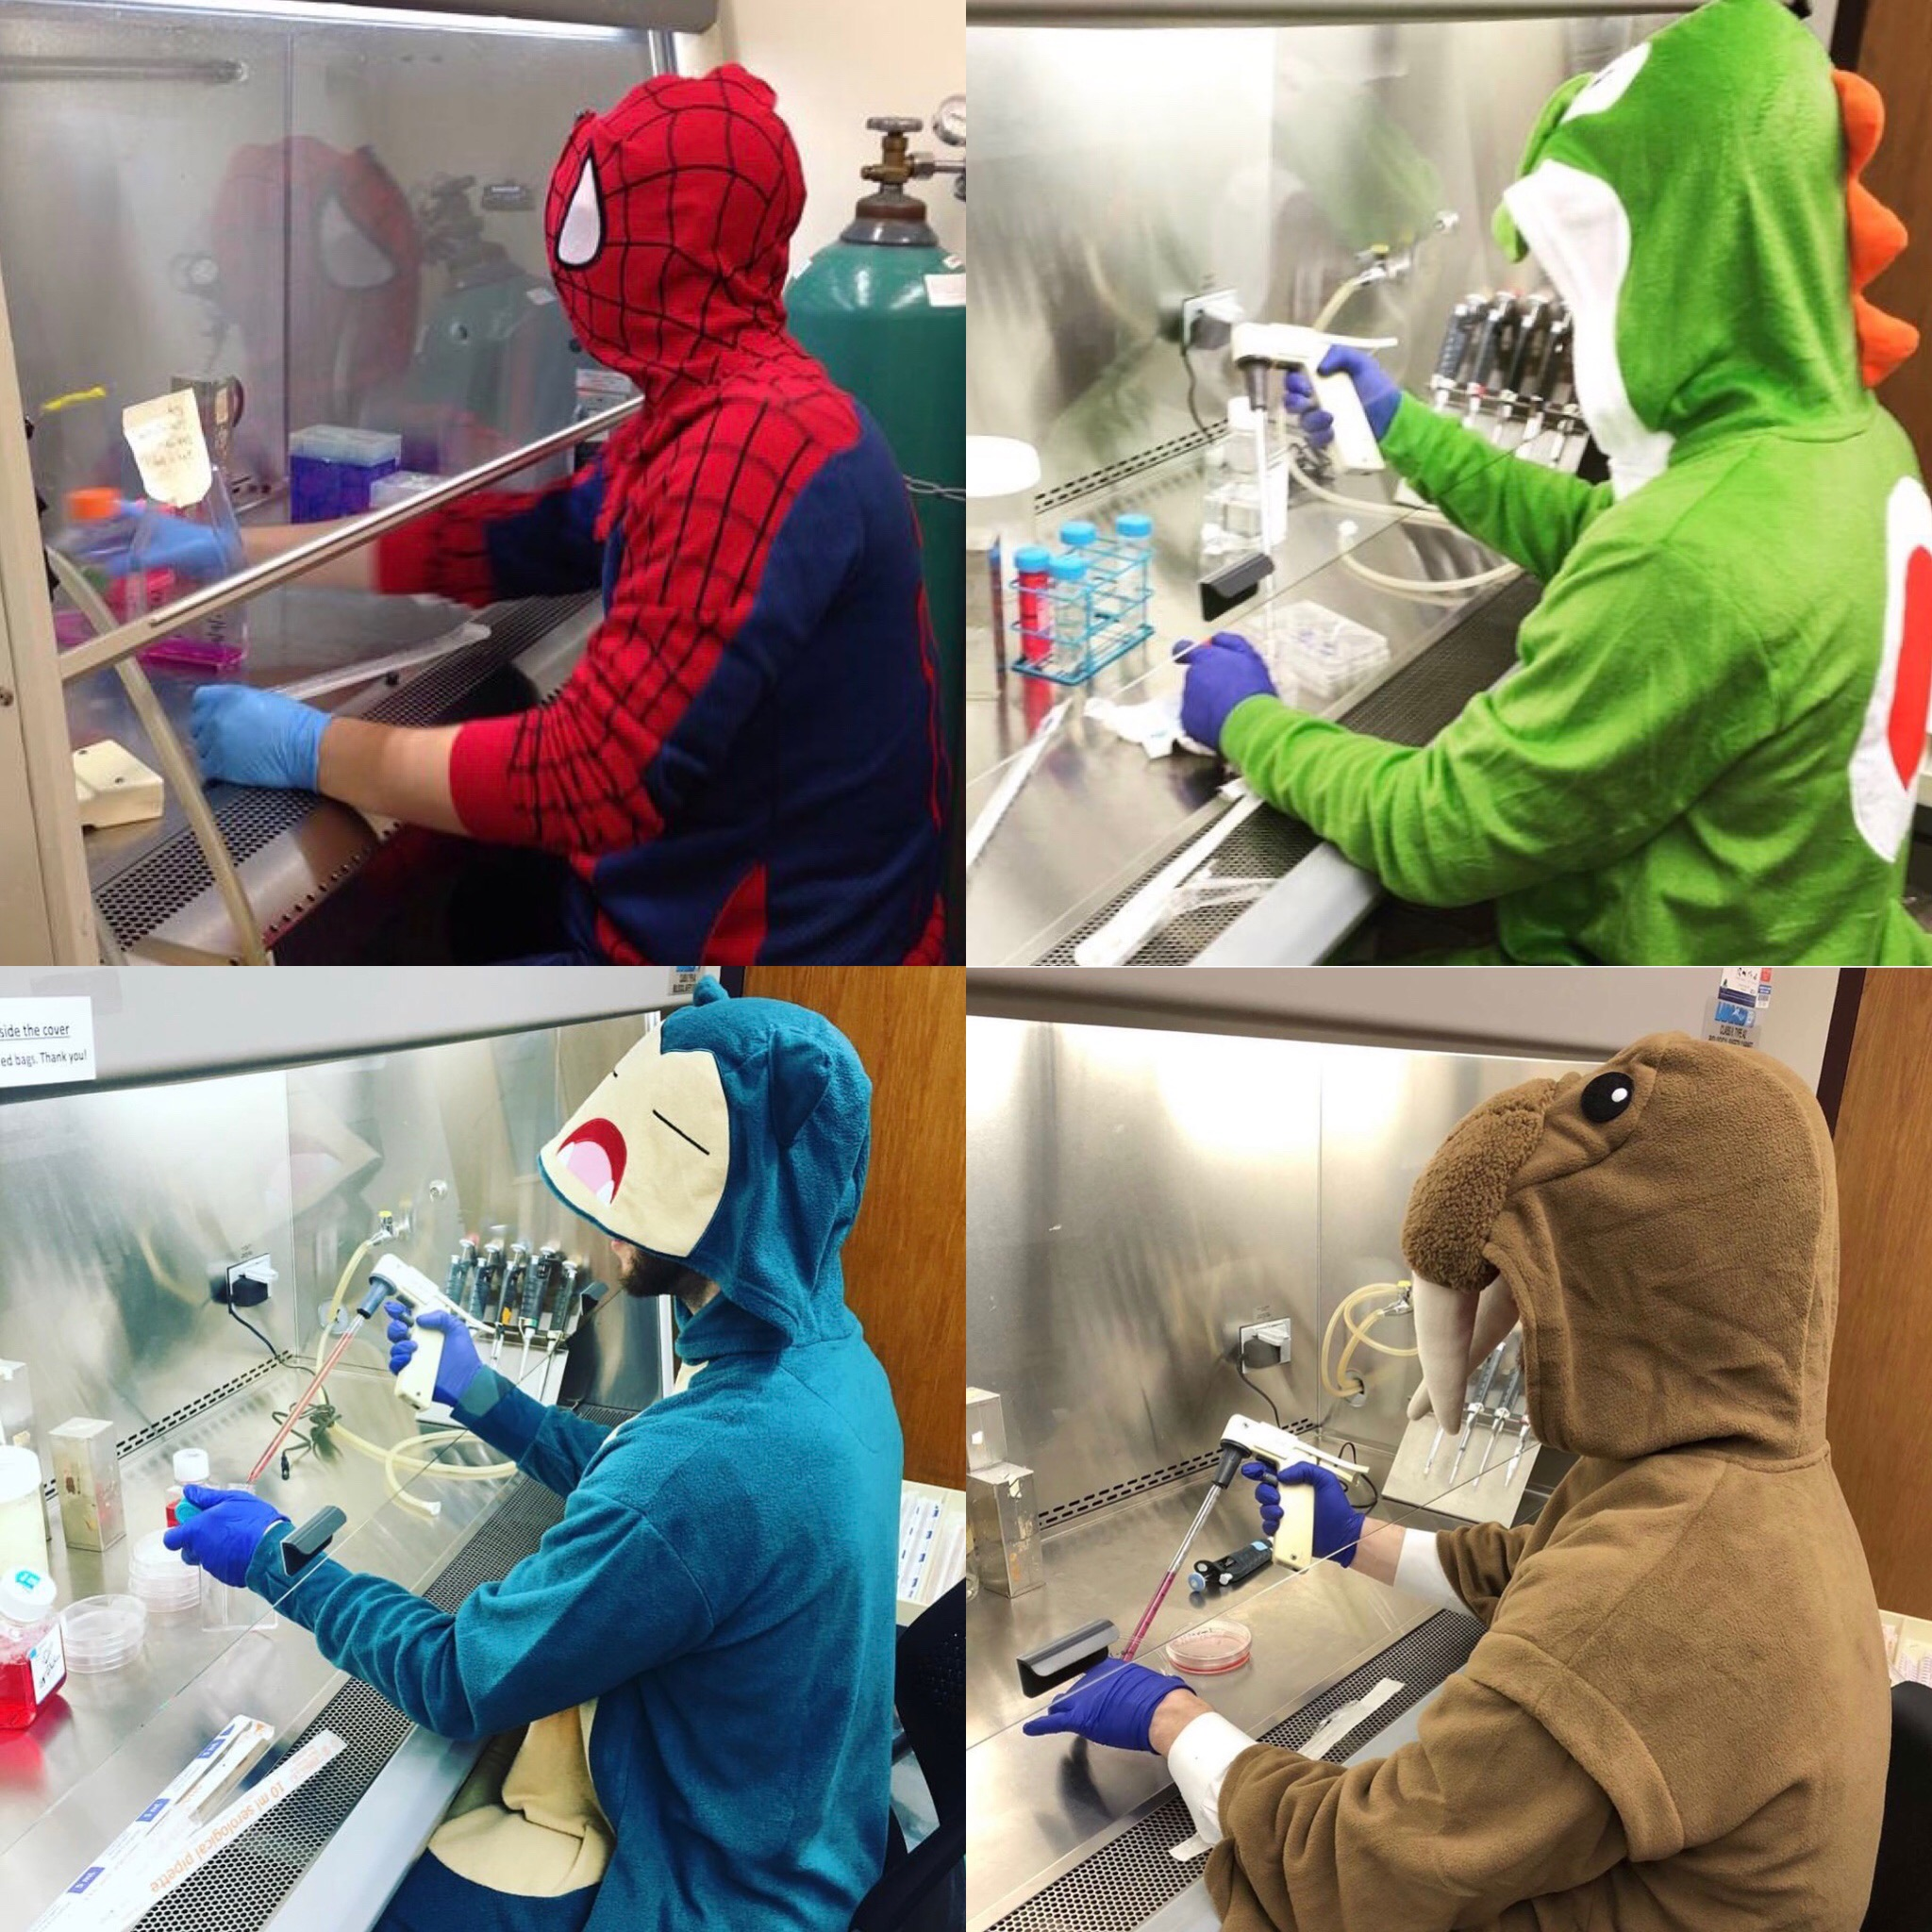 Daniel Principe dressed up for Halloween working in the lab